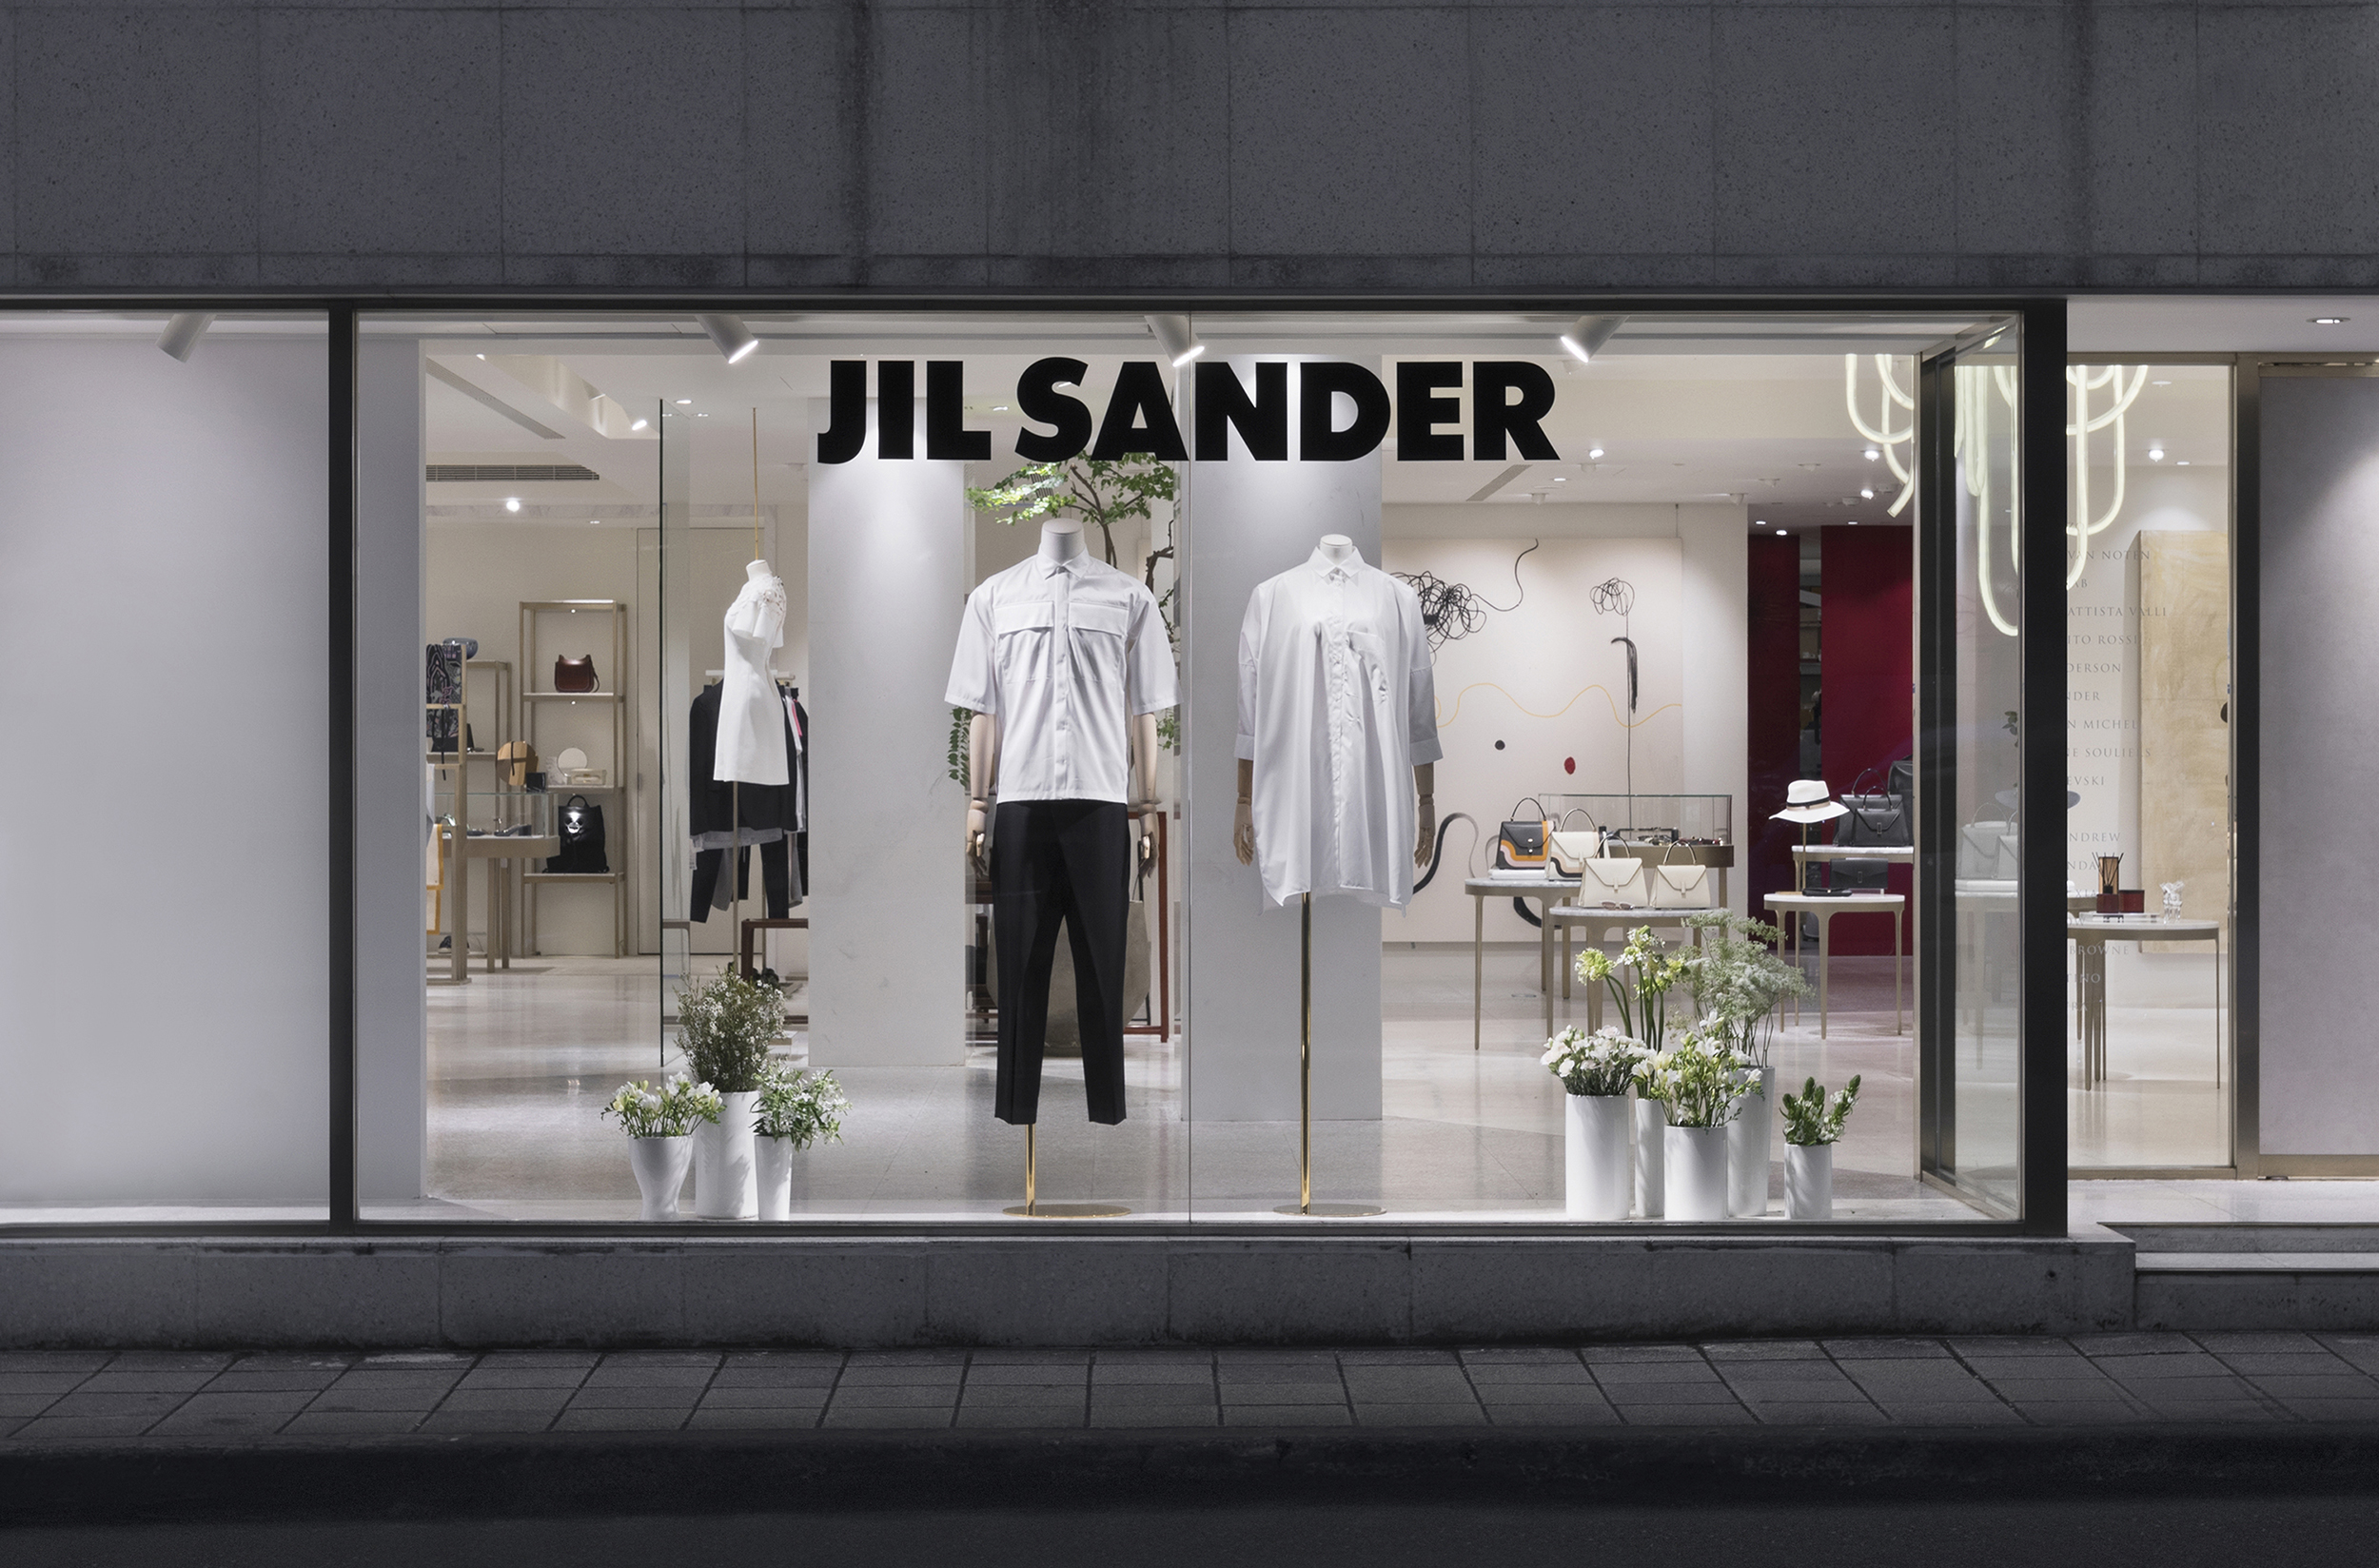 ART HAUS_JIL SANDER WINDOW DISPLAY_02.jpg